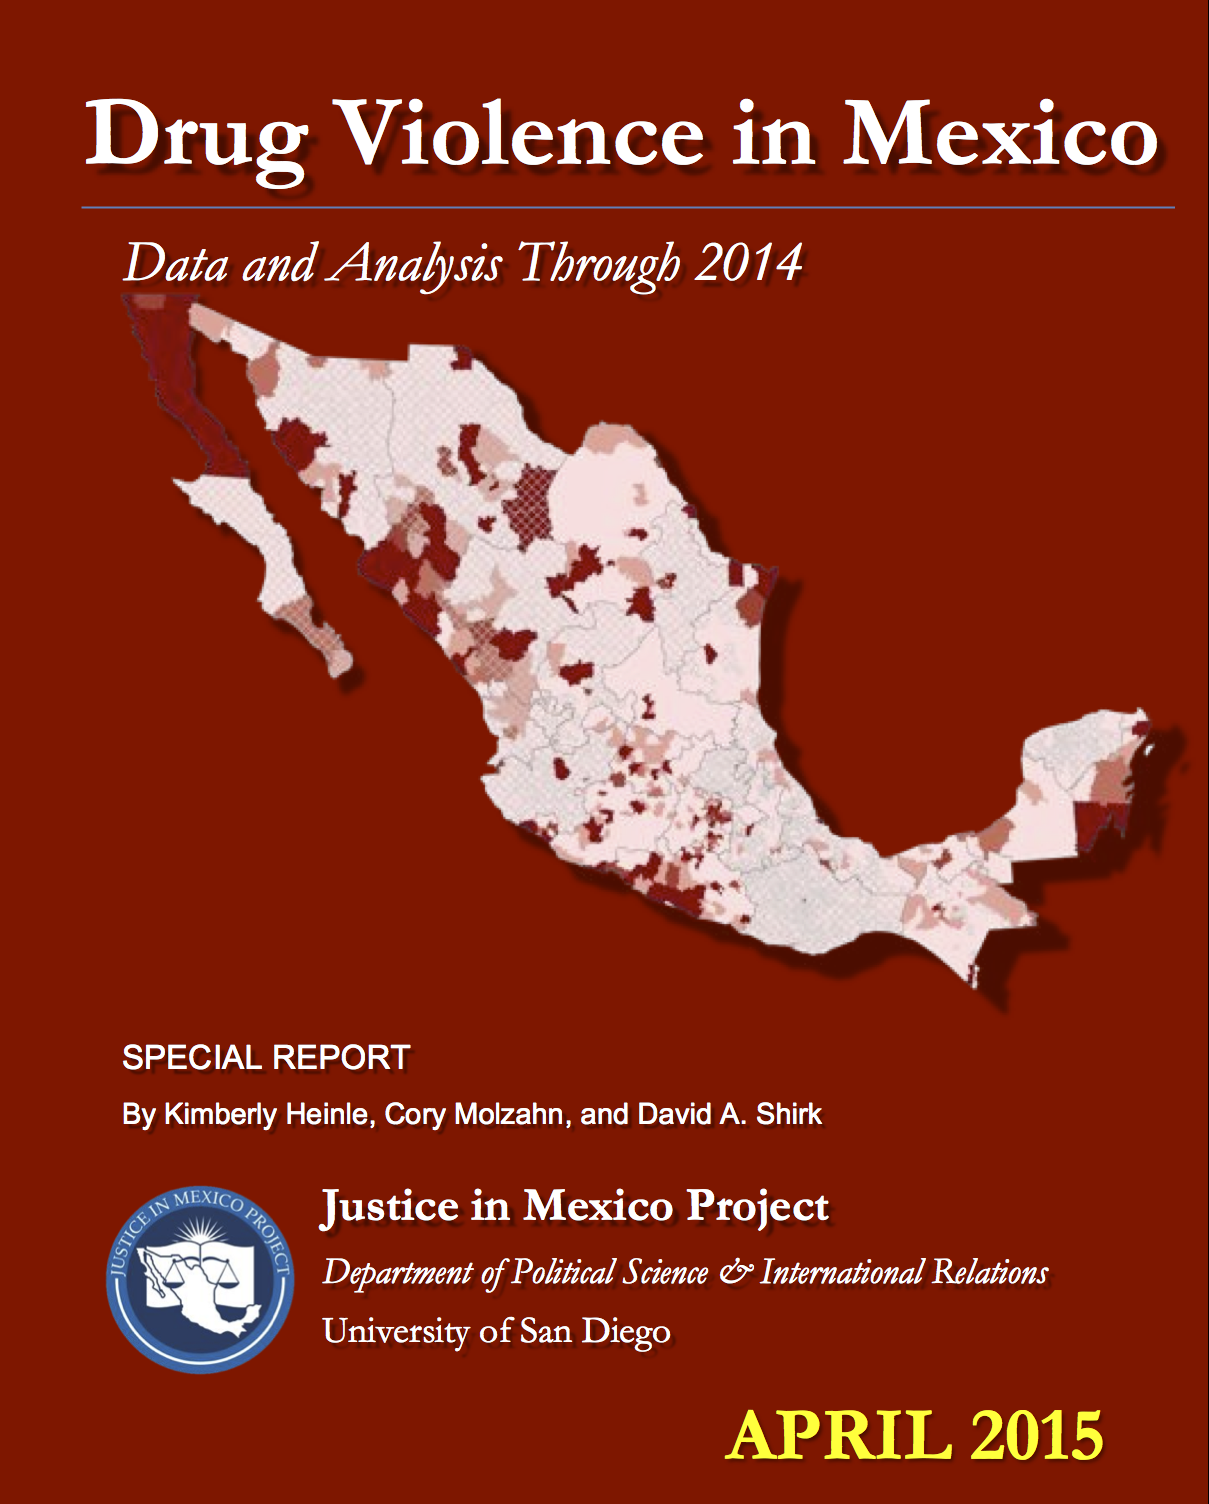 violence in mexico Mexico city has long been saved from cartel violence as it is not a turf that drug traffickers want to fight over most narco bloodshed is in the mountainous states where cartels grow opium.